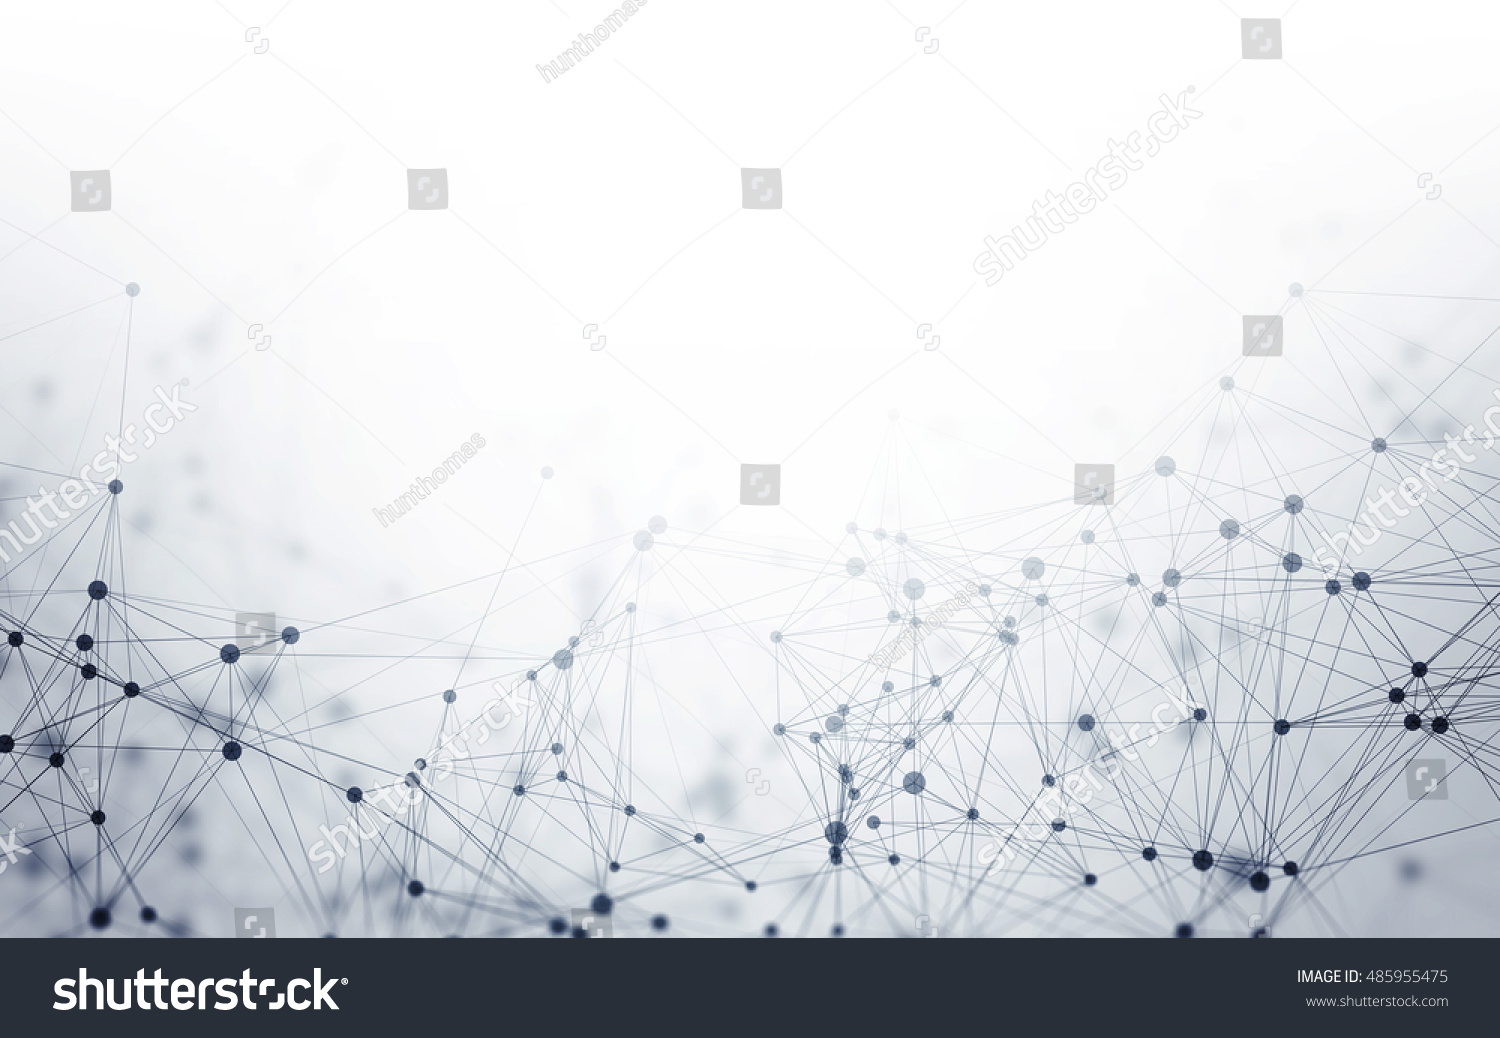 Abstract moving background white dots connected on fresh green stock - 3d Abstract Polygonal White Background With Low Poly Connecting Dots And Lines Connection Structure